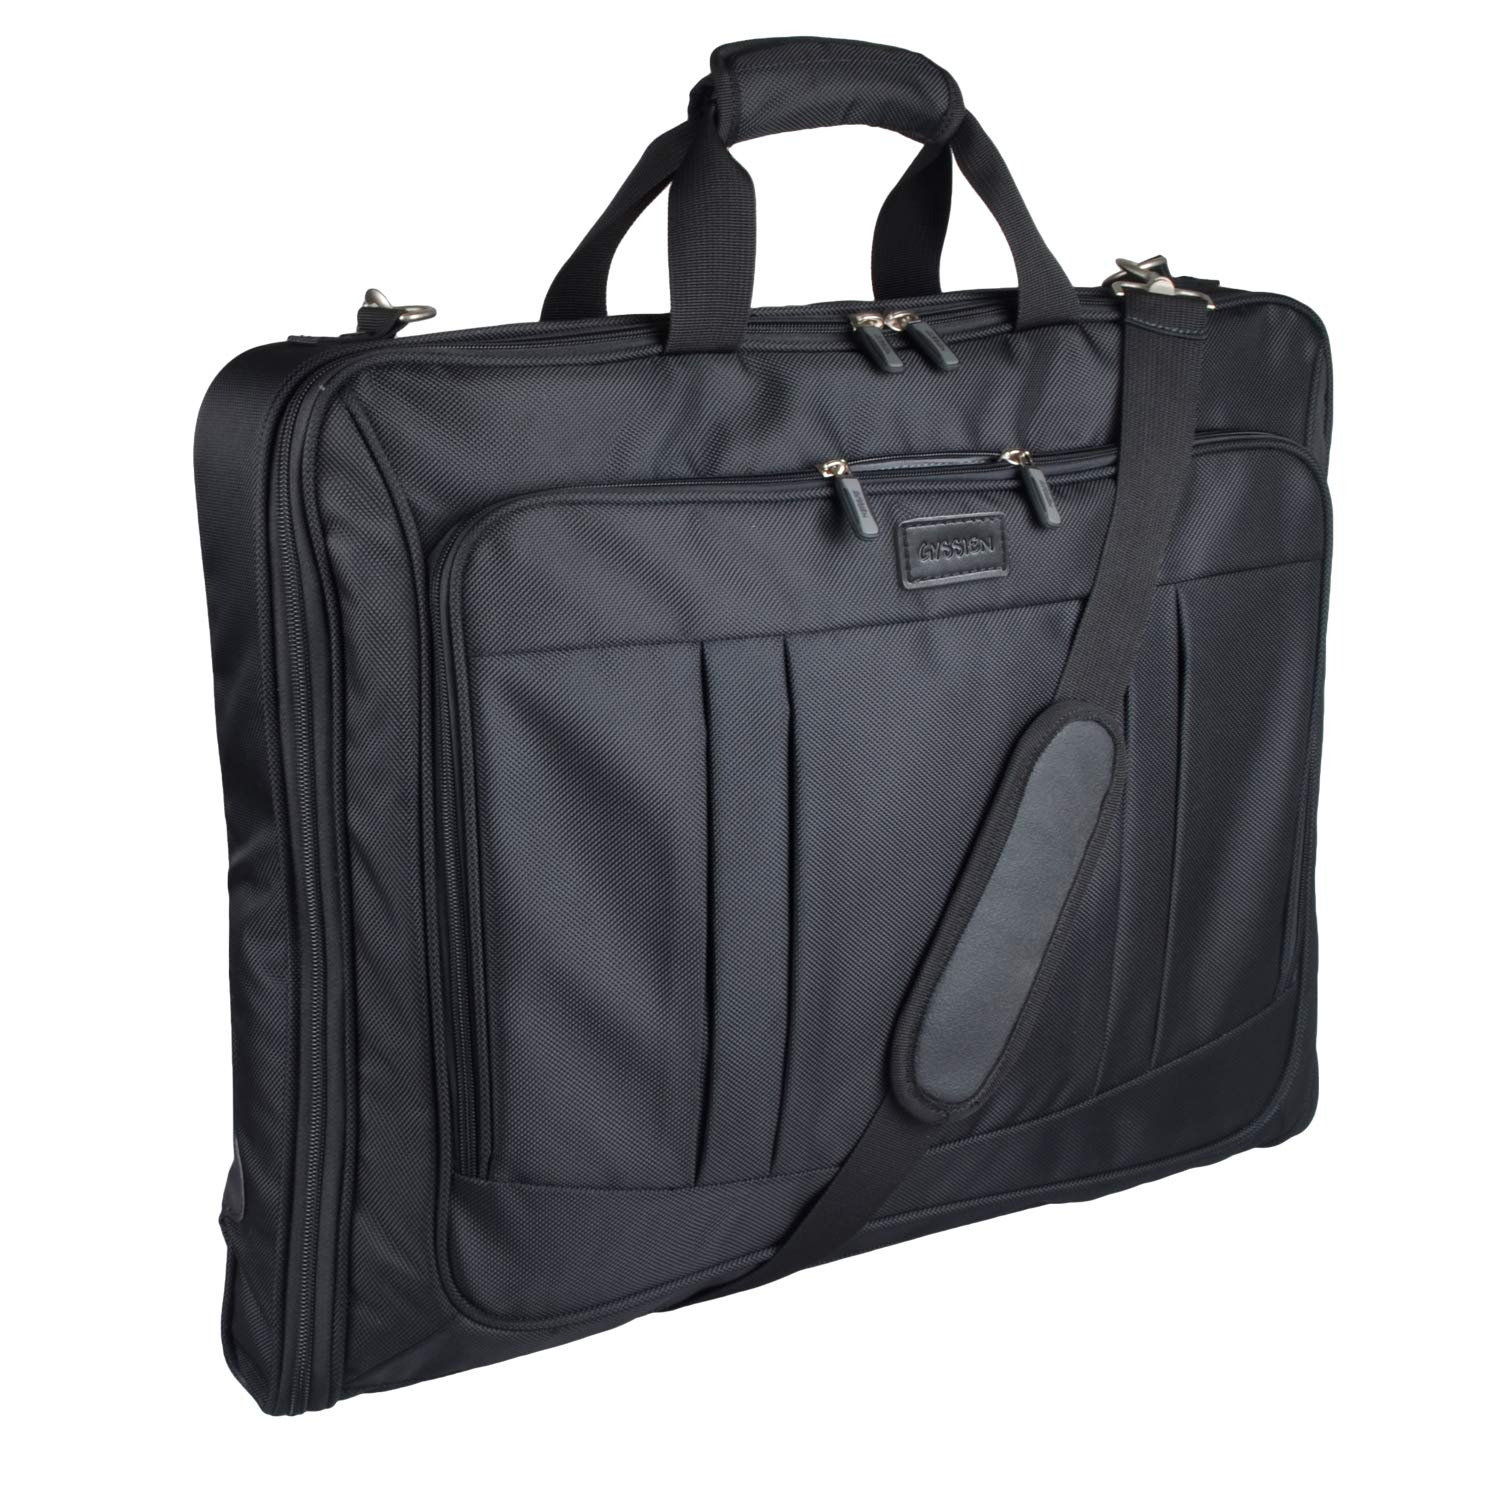 Foldable Carry On Garment Bag Fit 3 Suits, Luggage Suit Bag for Travel and Business with Shoulder Strap